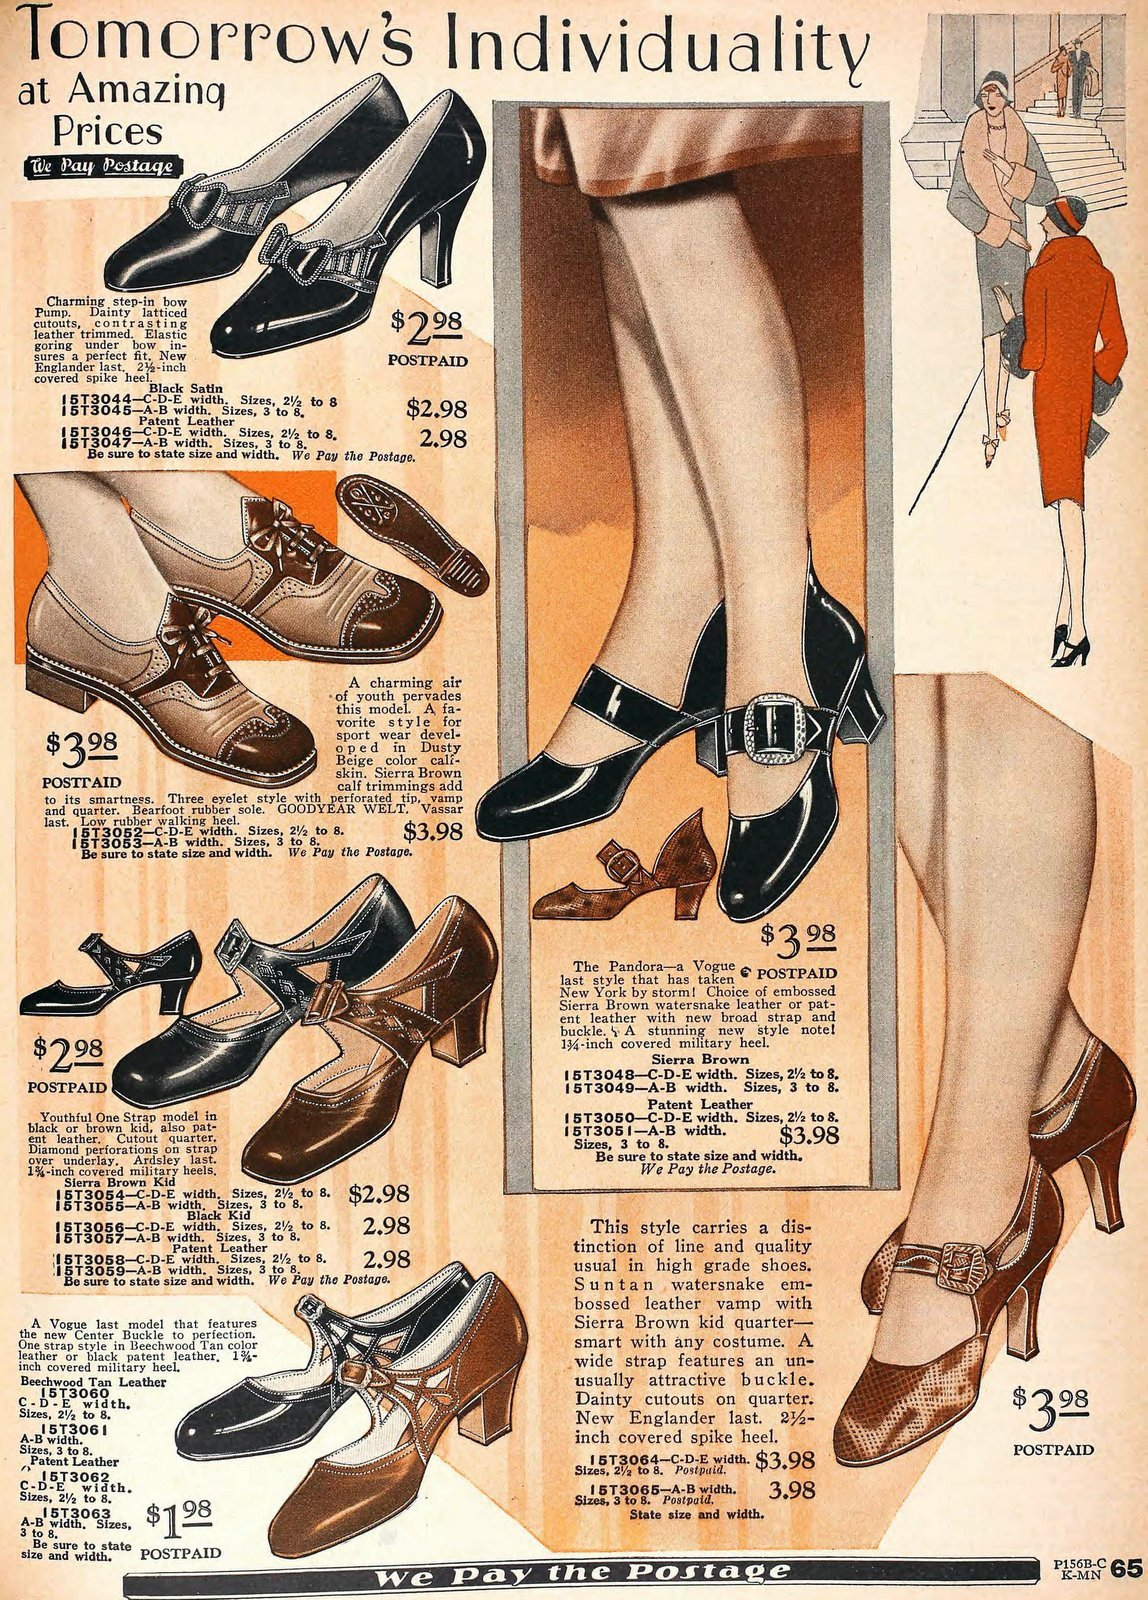 1920s shoes for women from 1929 (2)